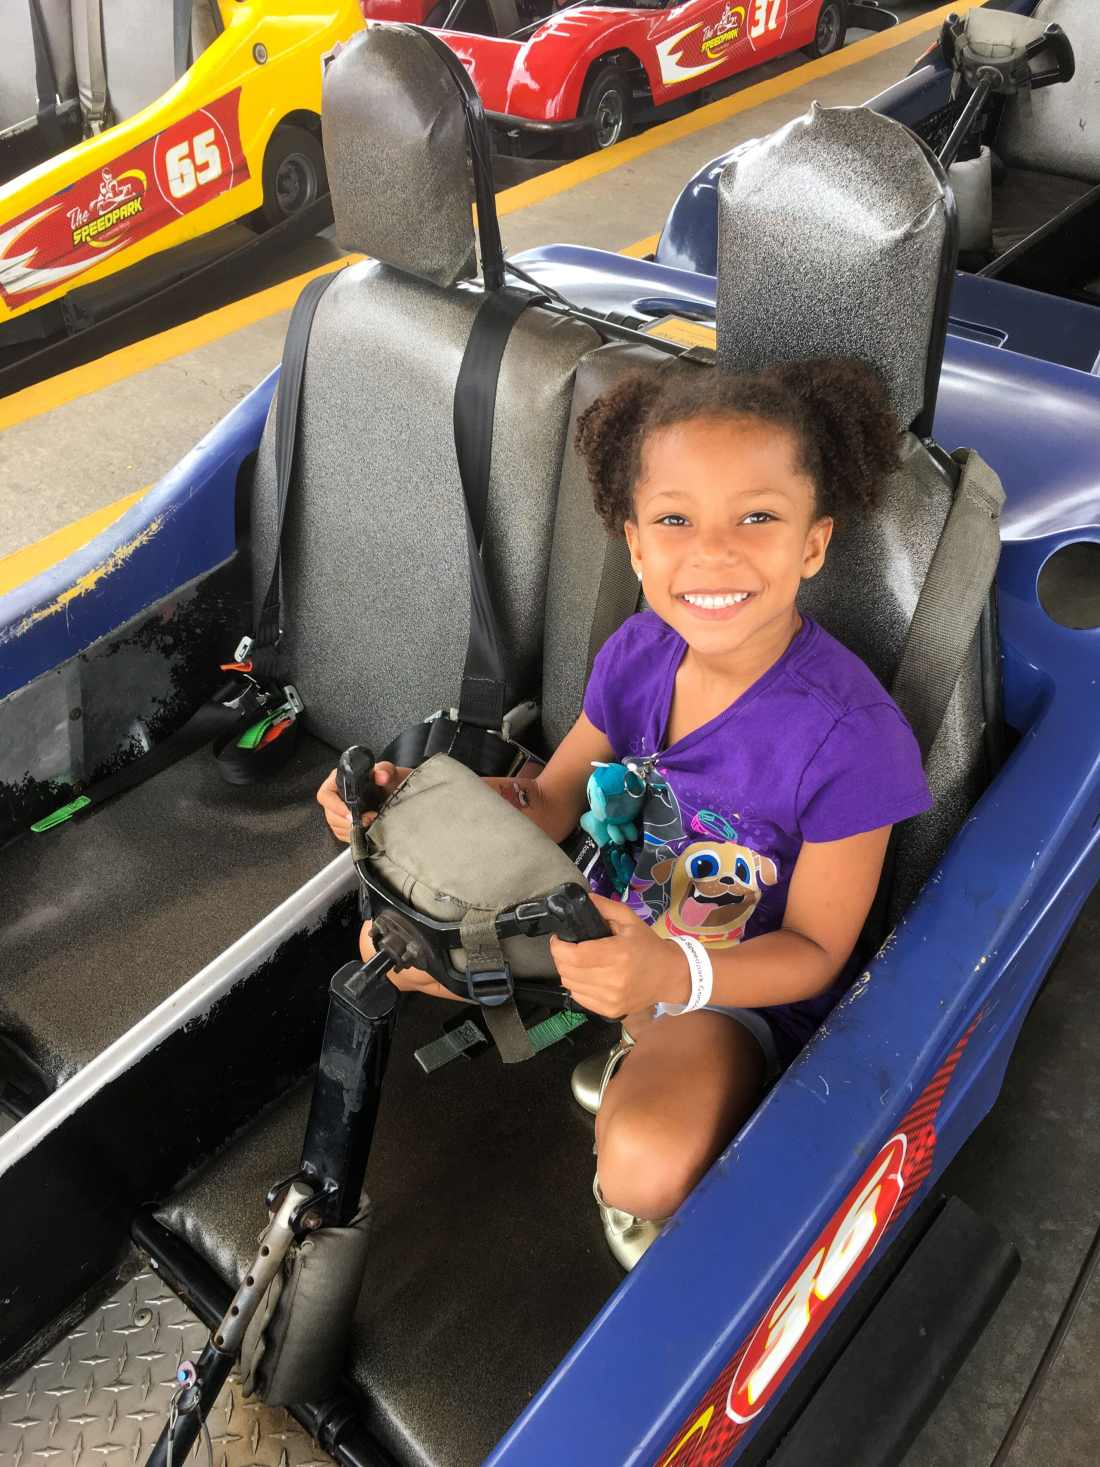 SpeedPark - Visit Cabarrus County African American GIrl In Car Smiling. Read more about our Racing Good Time at The Speedpark in Concord Mills North Carolina.